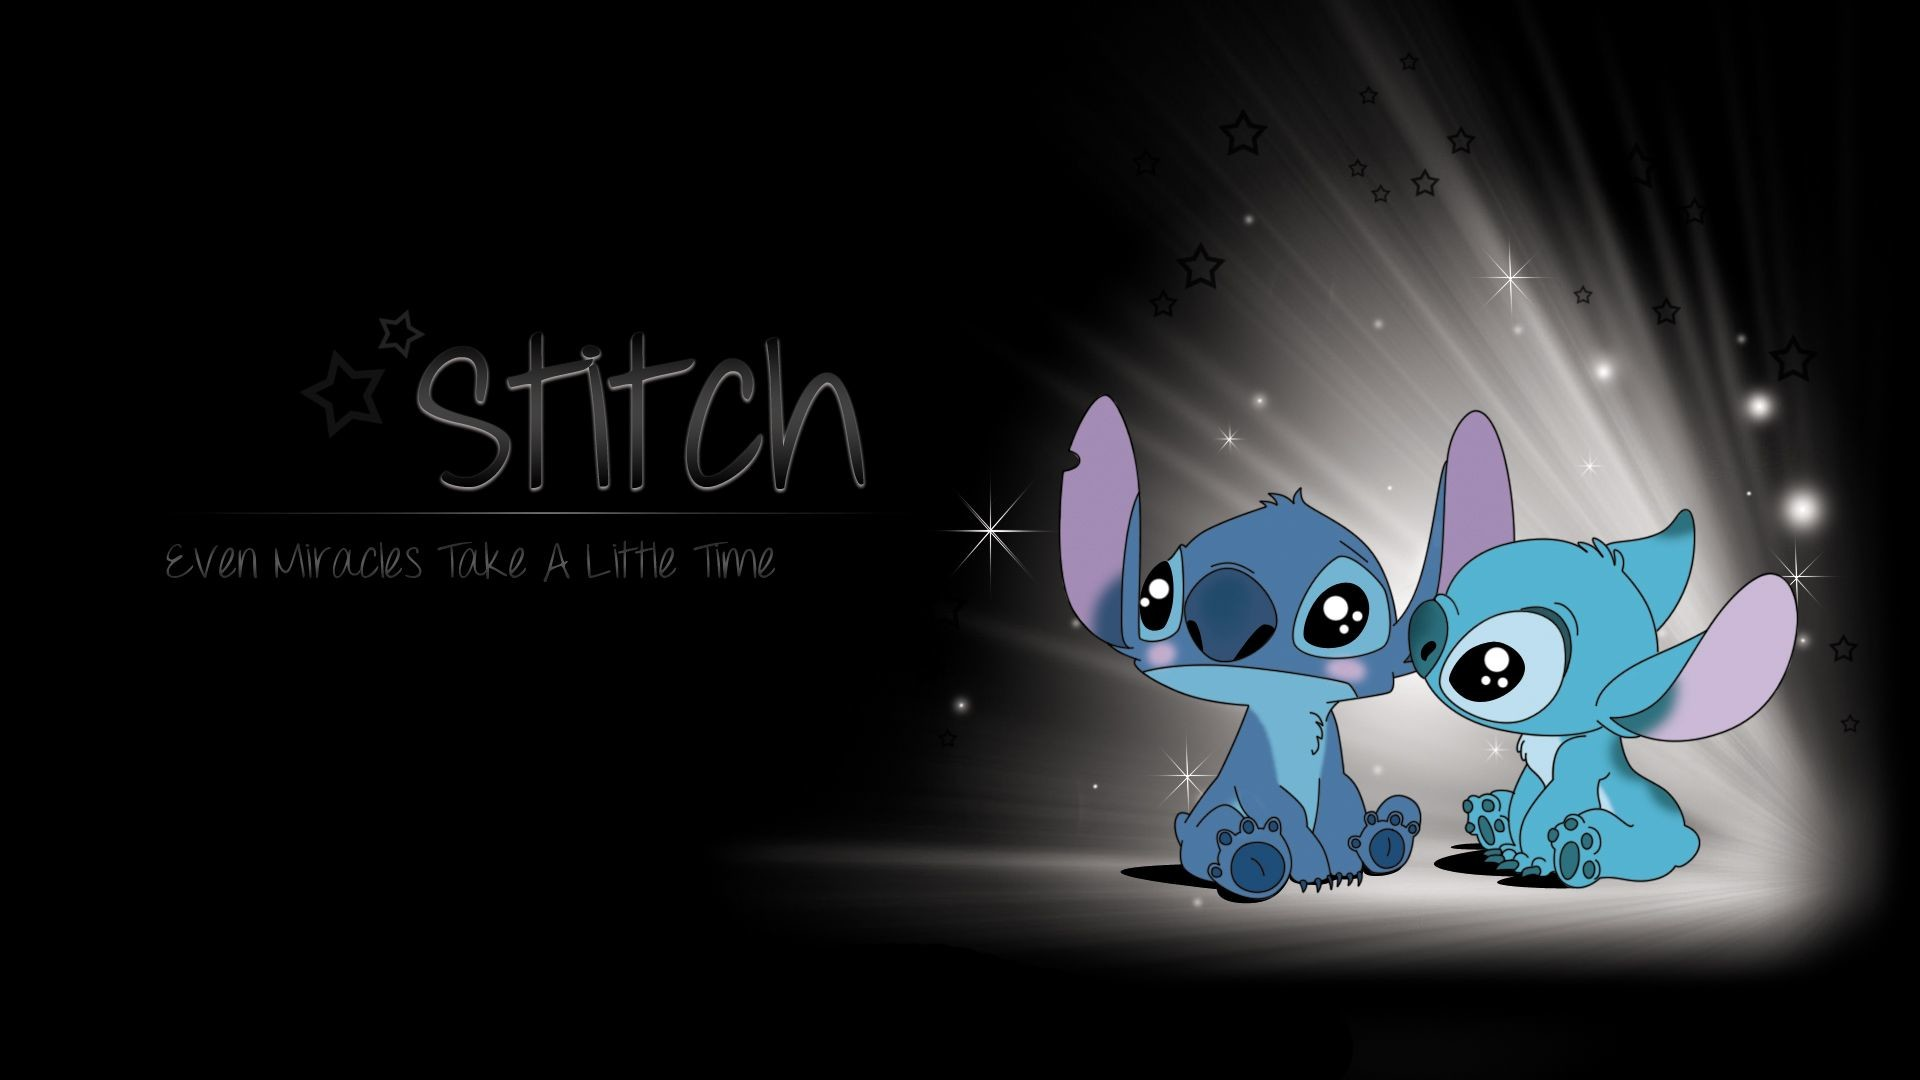 Patrick Wallpaper Hd Lilo And Stitch Wallpaper Desktop 62 Images